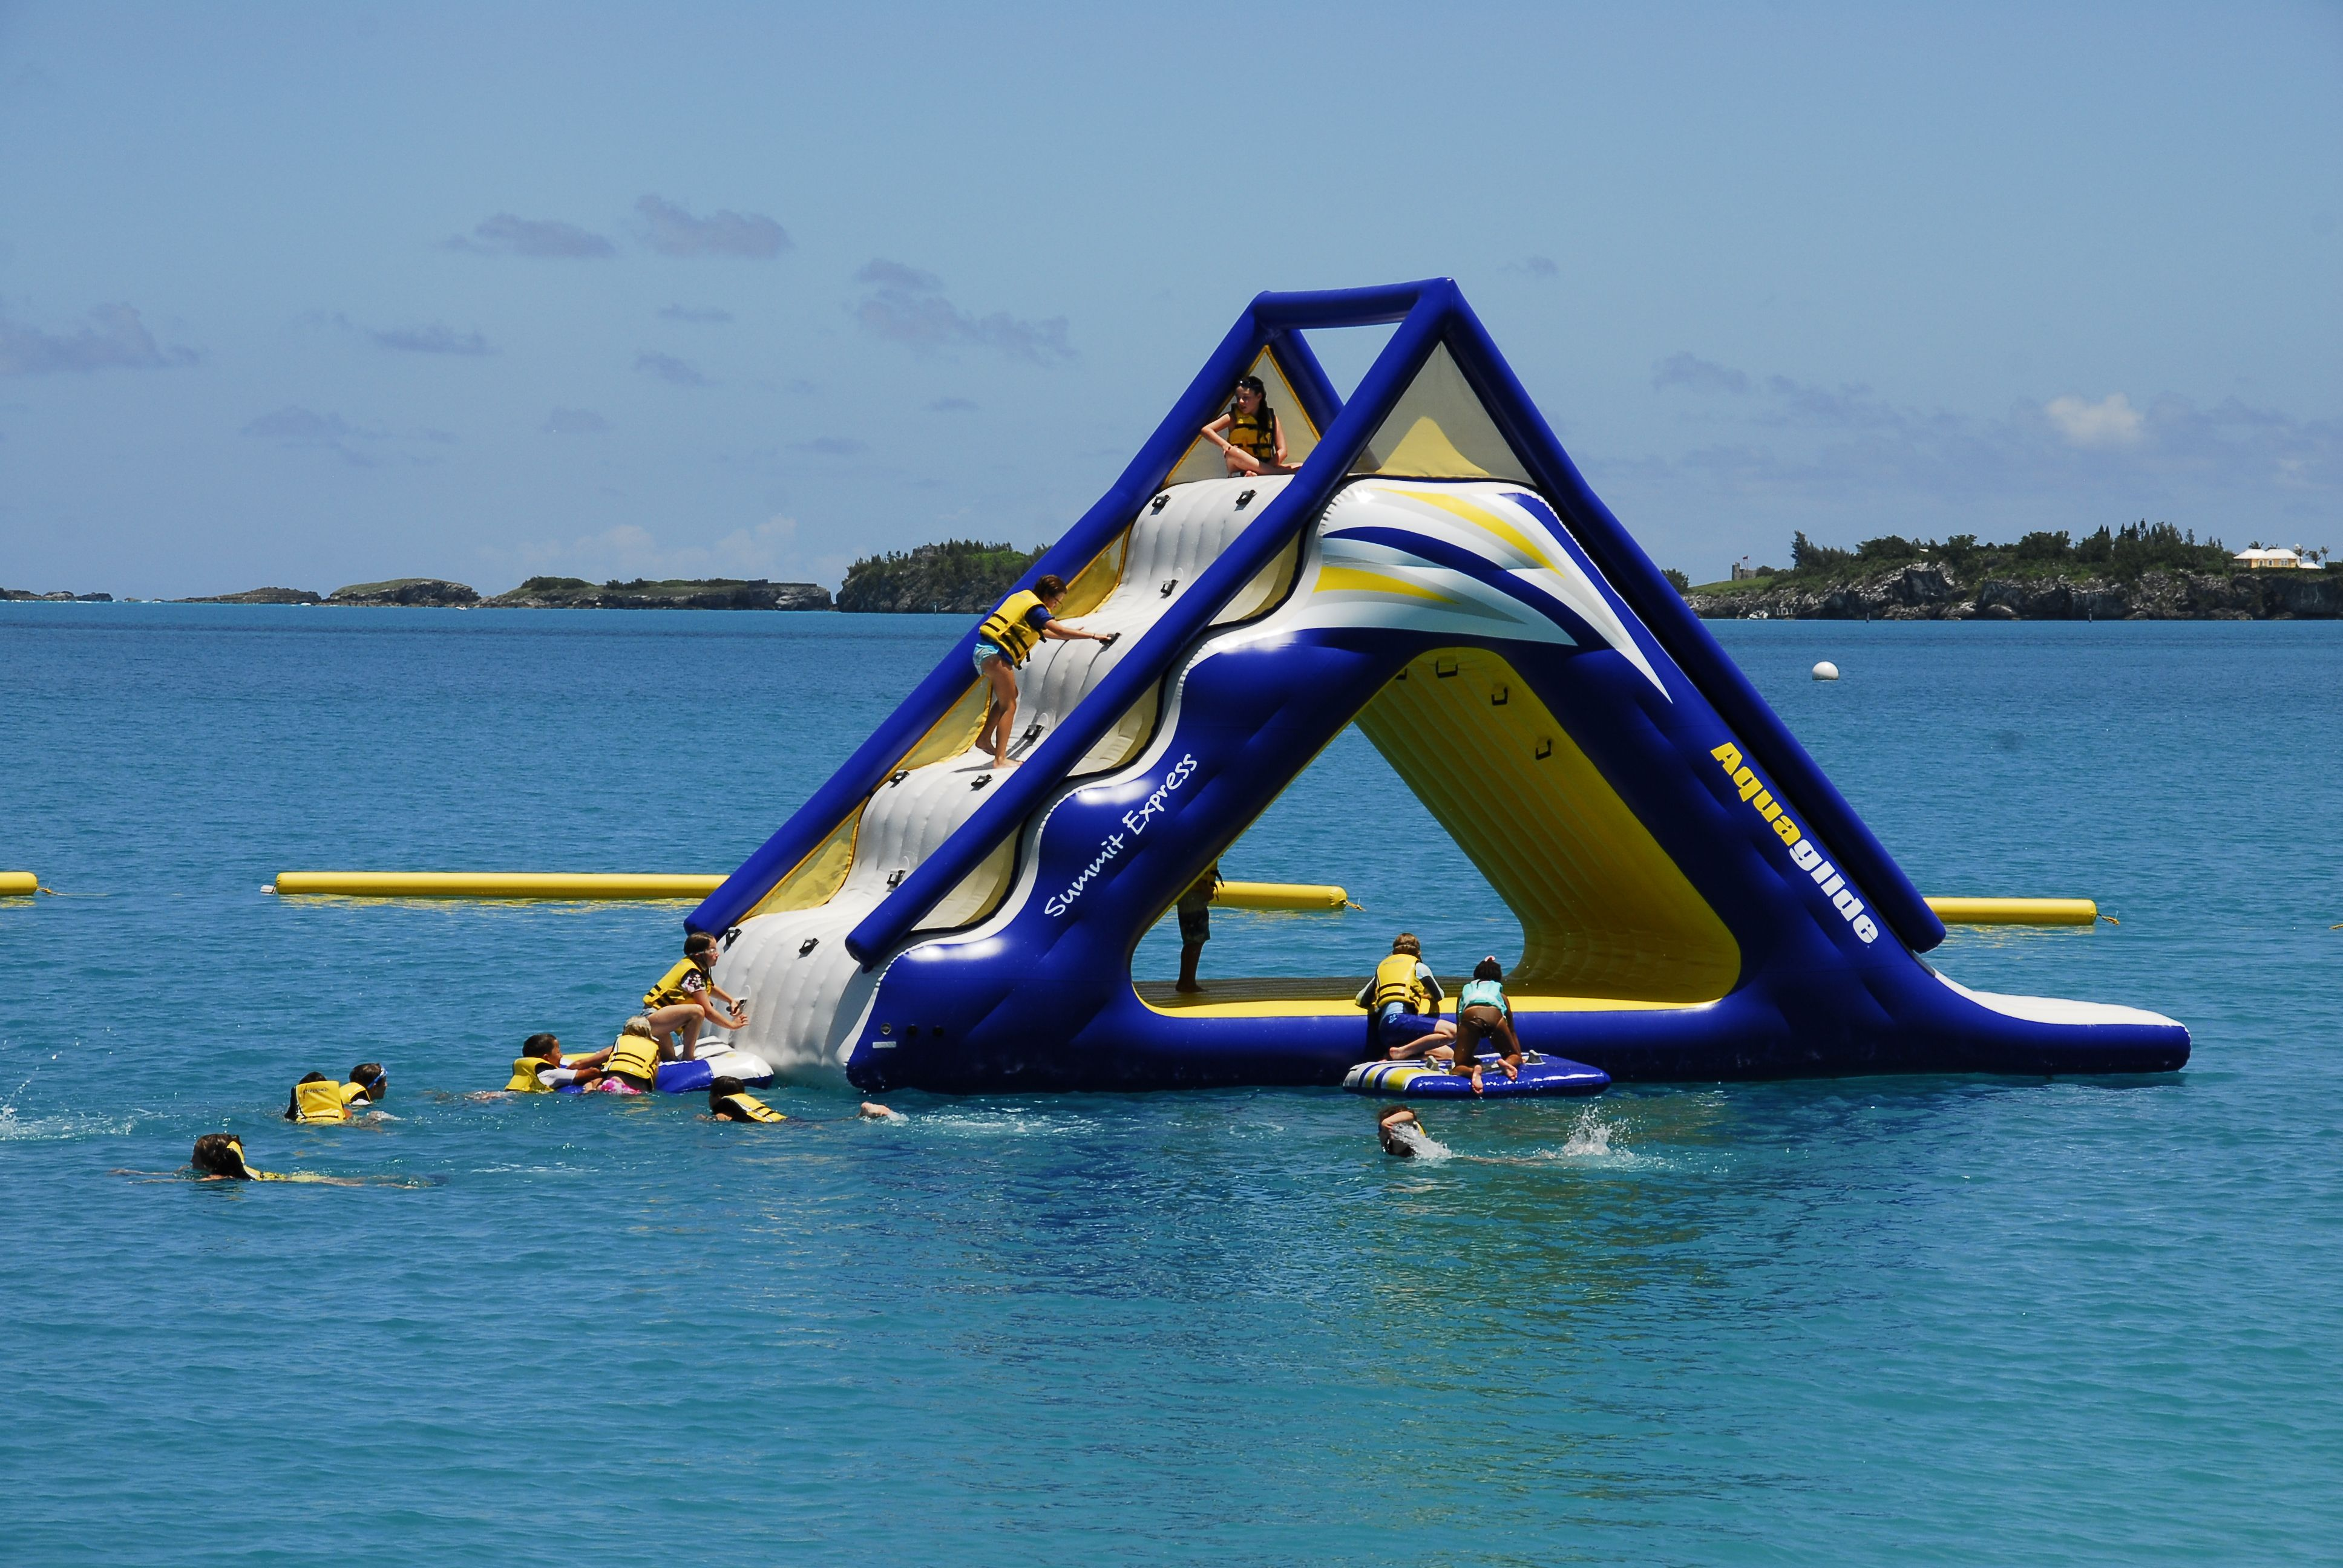 Water park slide. So much fun. Water sports activities